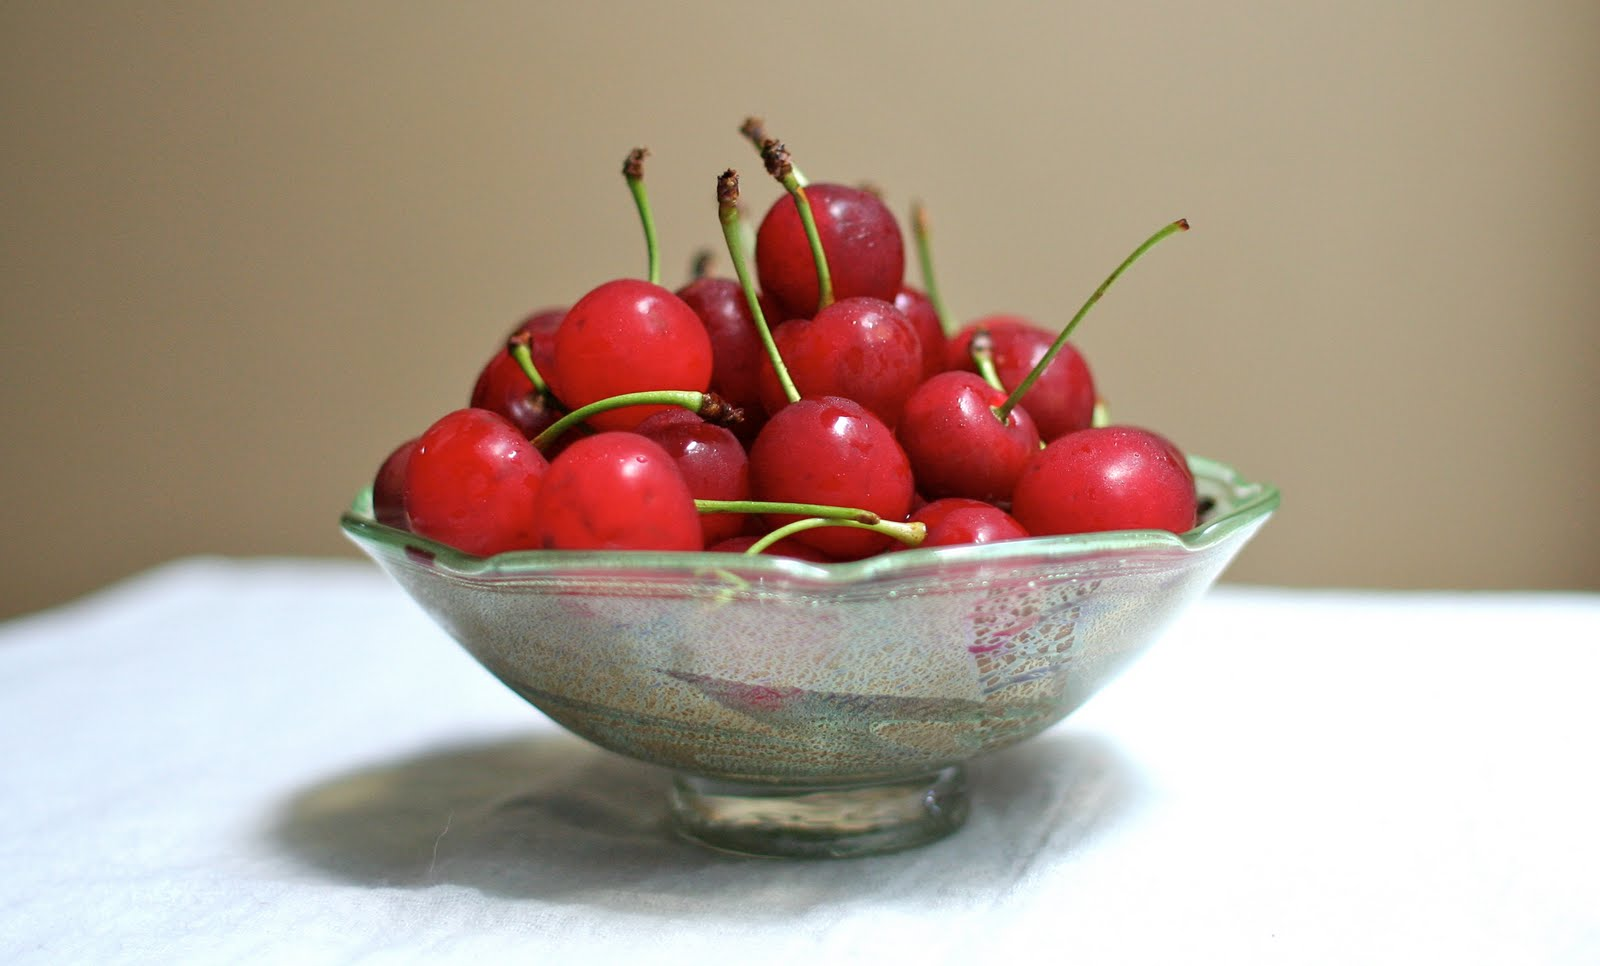 Buttered Bread: Sour Cherries